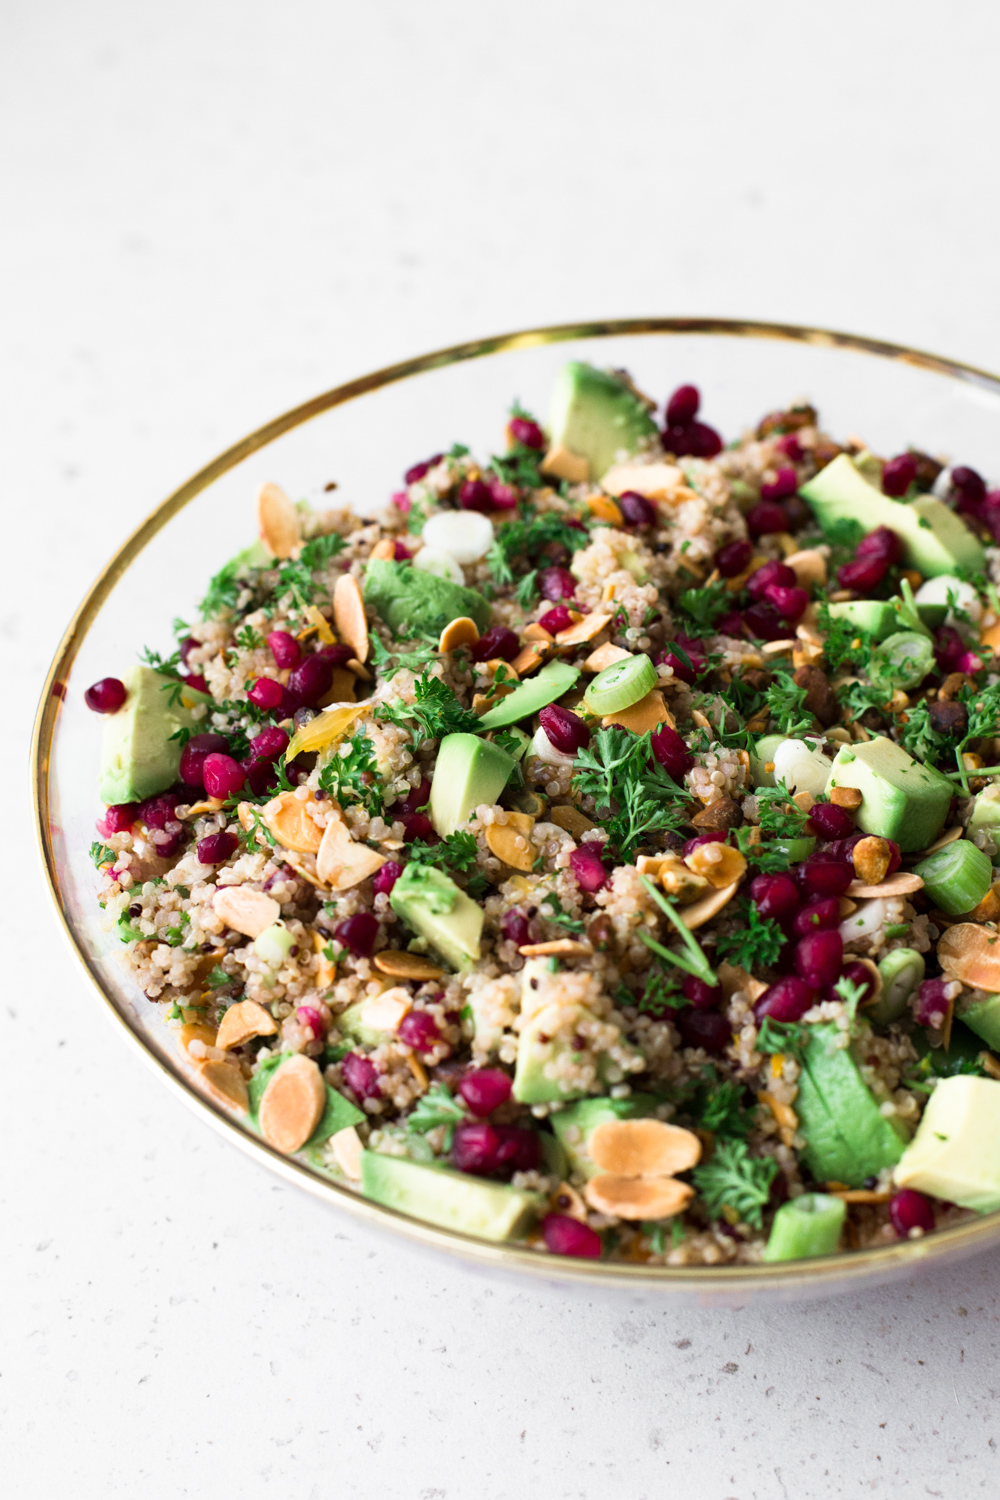 A delicious Vegan Quinoa Crunch Salad studded with toasted Almond, Pistachio and Pomegranate. Perfect for a healthy lunch or as a potluck dish! #quinoa #christmas #holidays #pomegranate #orange #healthy #glutenfree #salad #avocado #pistachio #almond